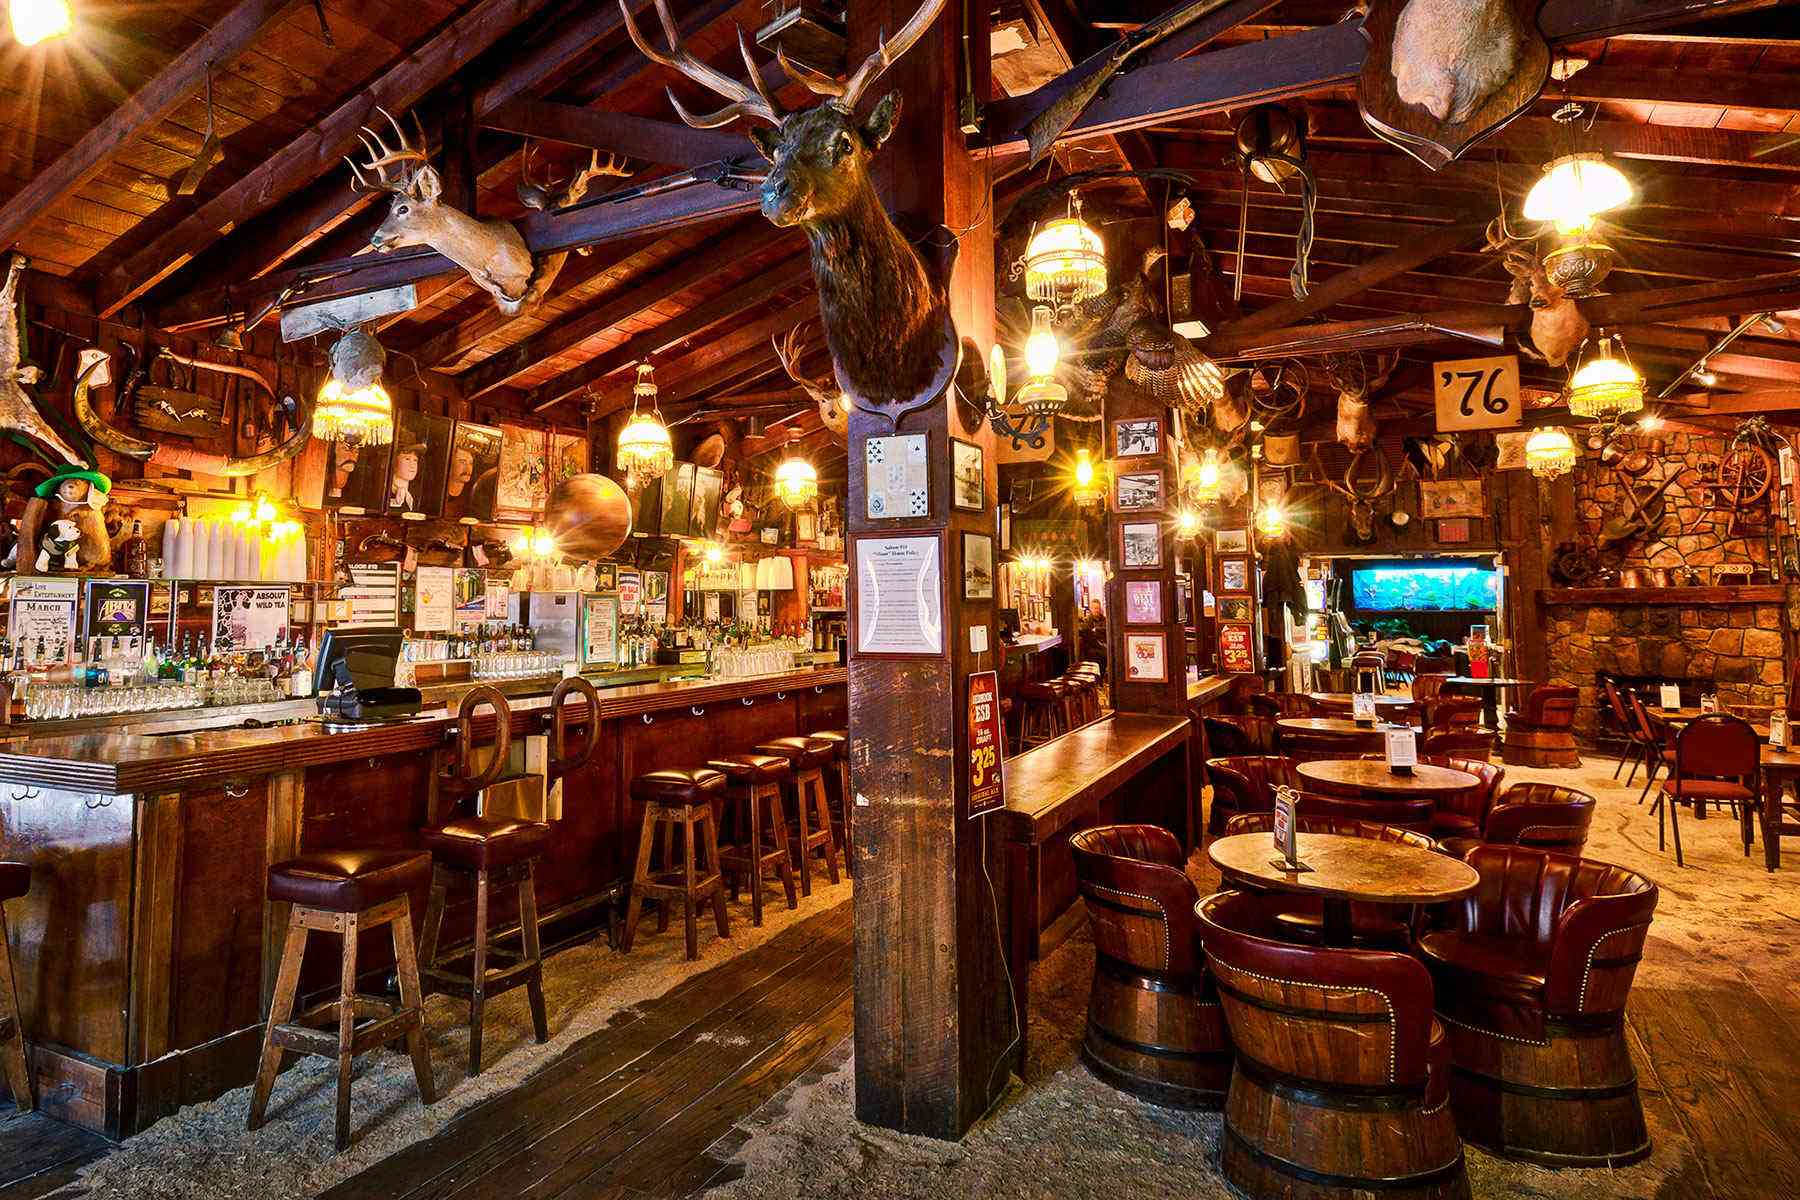 12 Wild West Bars to Make You Feel Like a Cowboy  Fodors Travel Guide